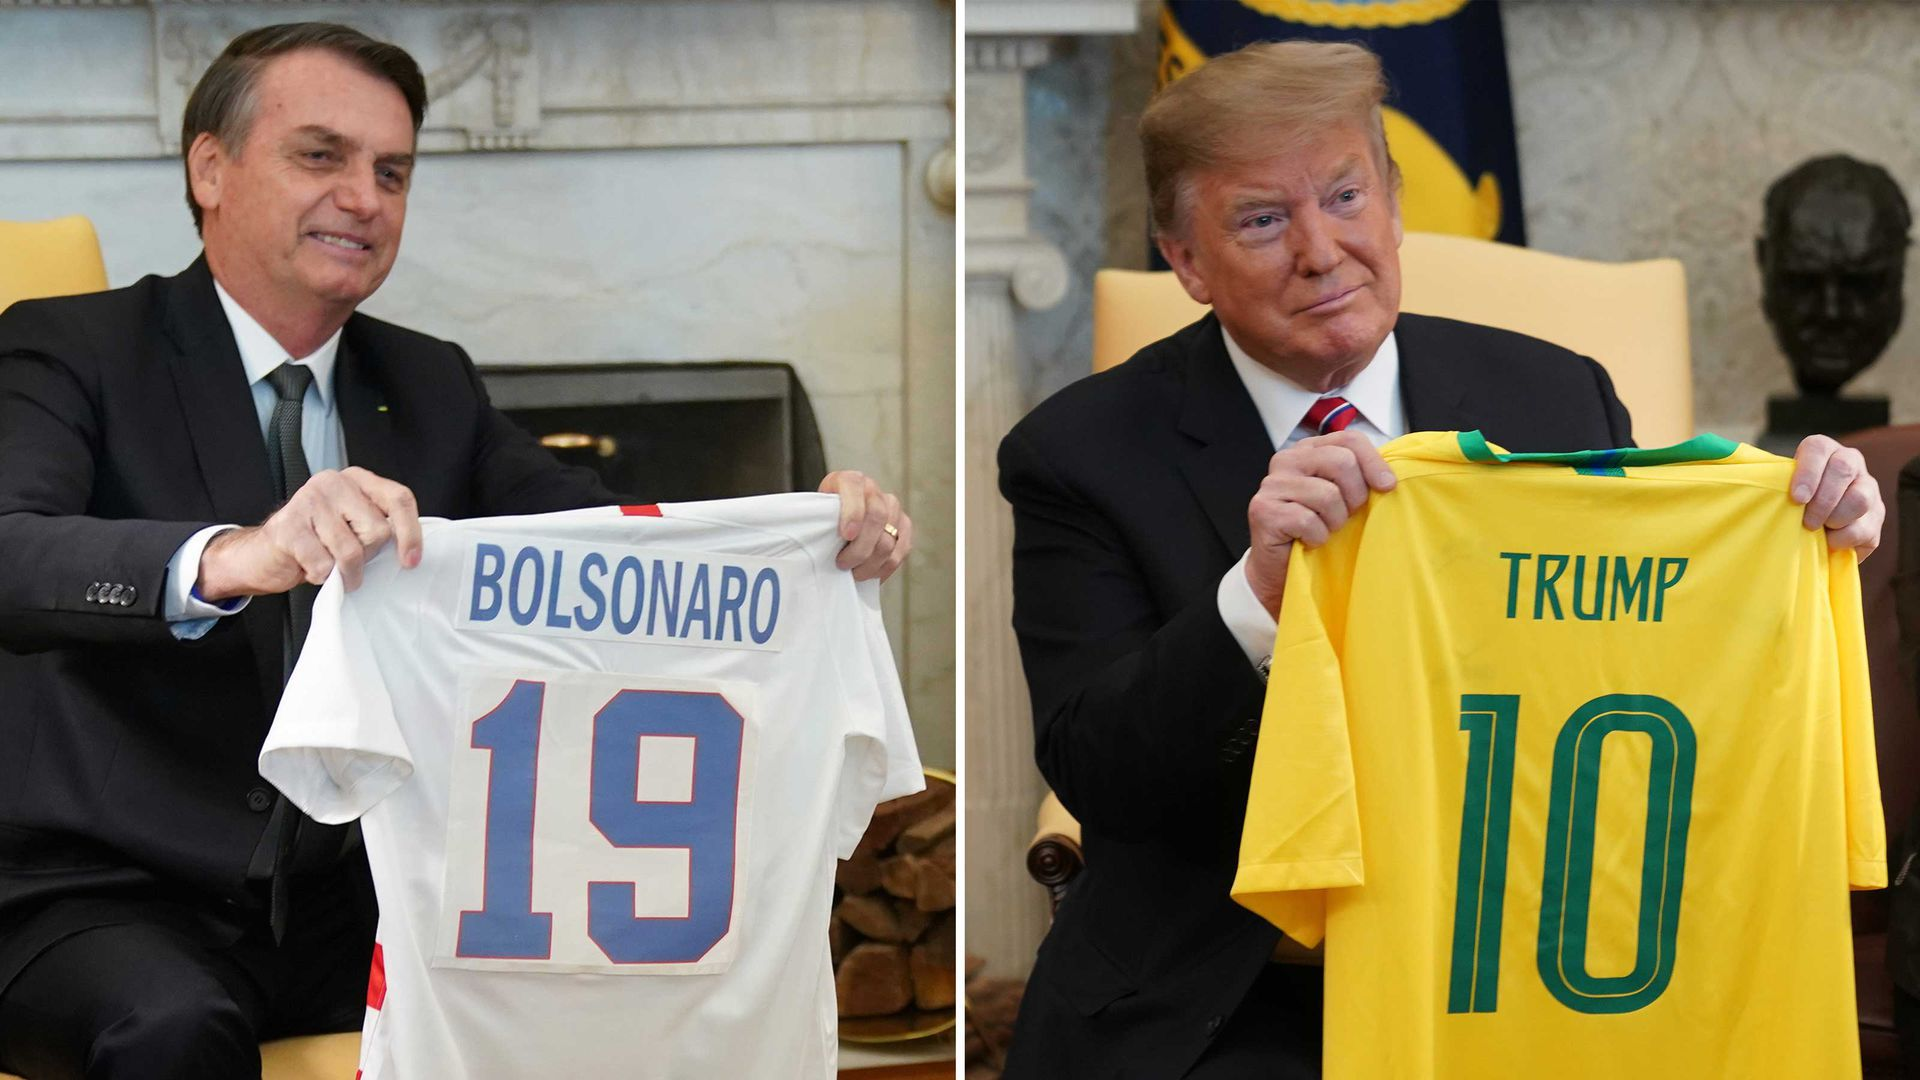 The two exchanged soccer jerseys in the Oval Office yesterday. (Chris Kleponis/Pool/Getty Images)